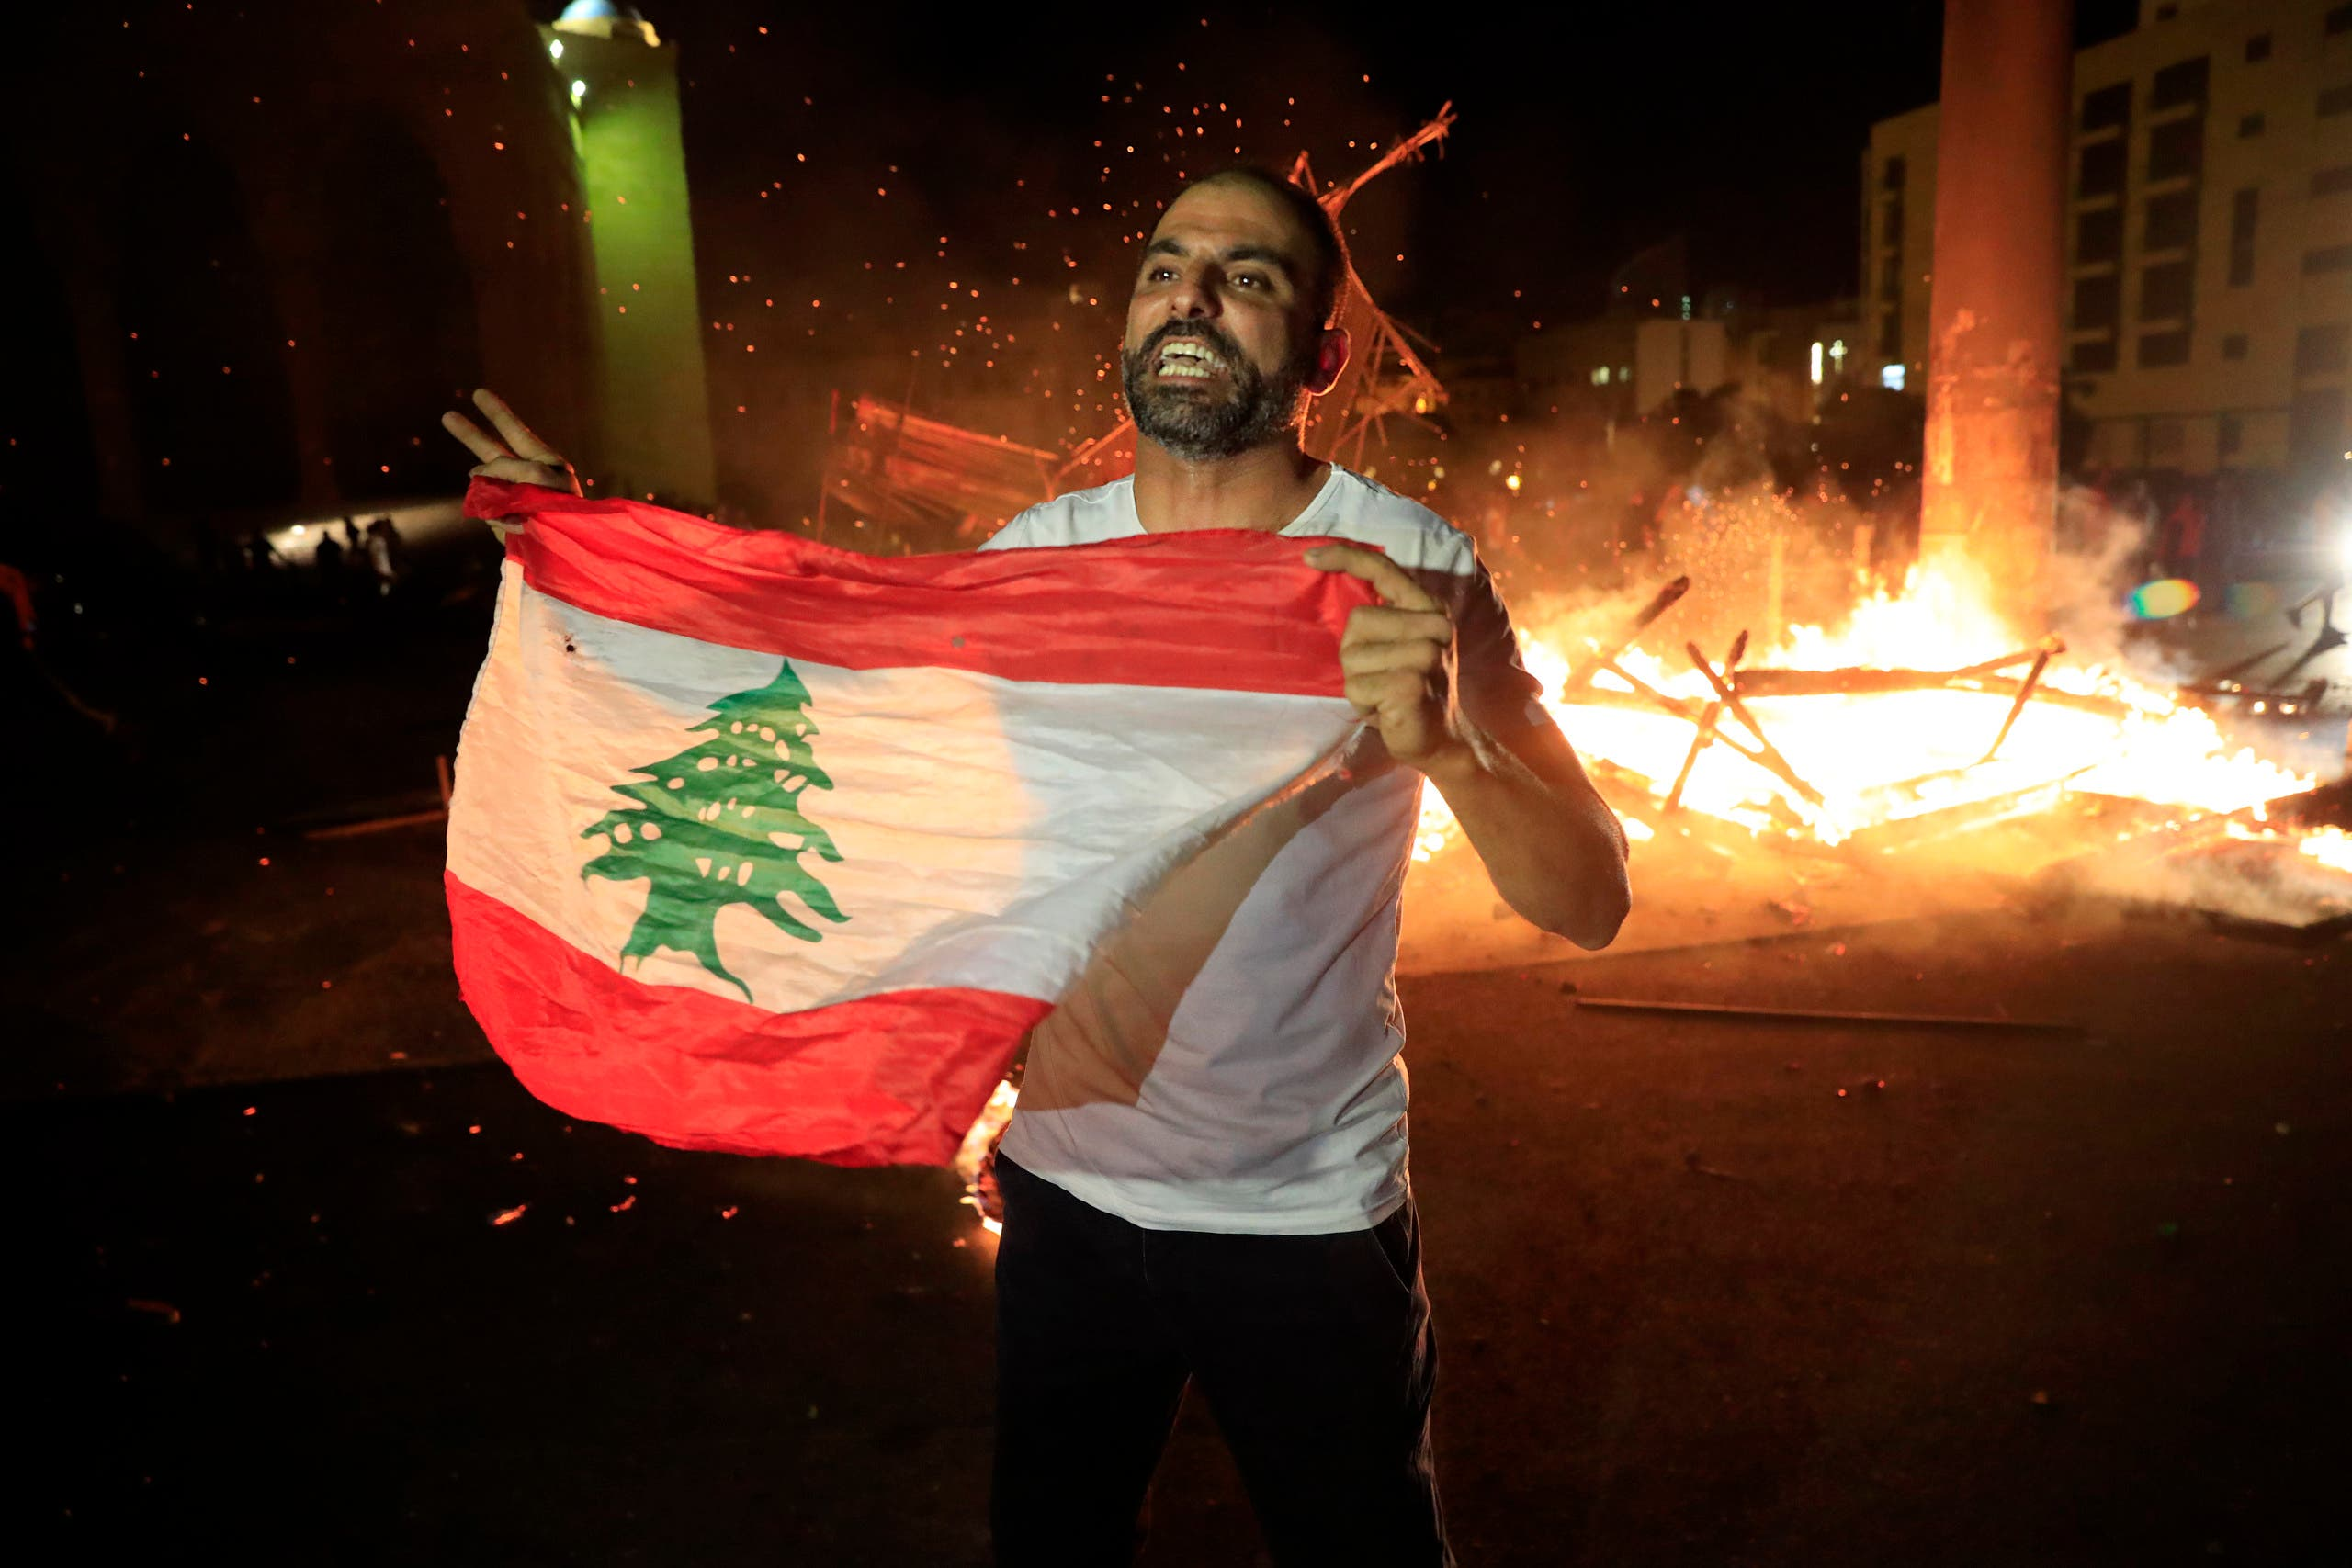 A protester holds the Lebanese flag and shouts slogans denouncing the naming of former Lebanese Prime Minister Saad Hariri as a potential candidate for prime minister, after Hariri's supporters burned a significant protest symbol erected in downtown Beirut on Oct. 21, 2020. (File photo: AP)